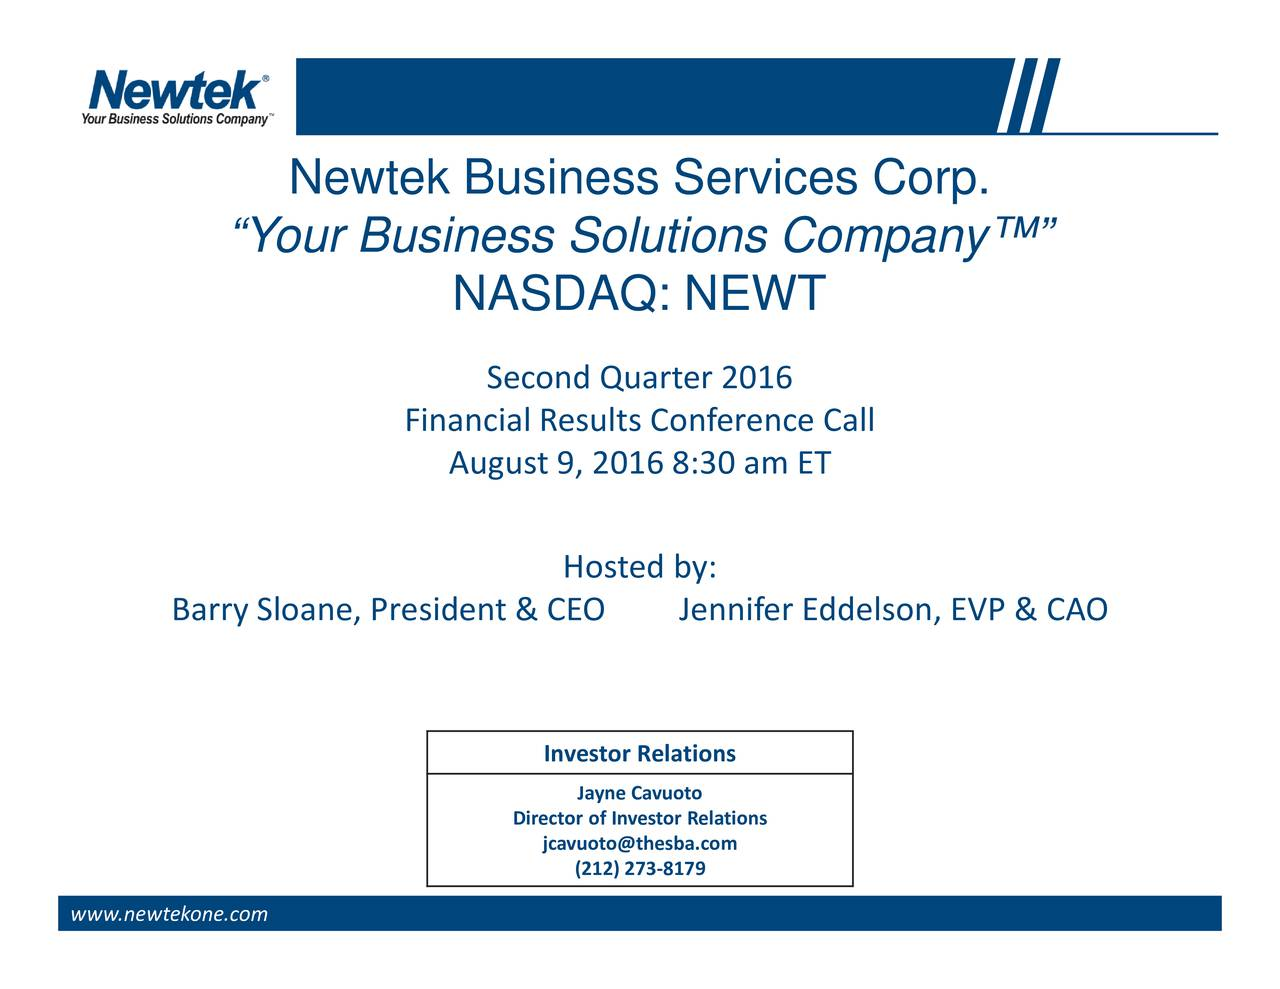 , EVP & CAO Hosted by: Jayne (212) 273-8179 Investjcavuoto@thesba.com Second Quarter 2016 Director of Investor Relations NASDAQ: NEWTAugust 9, 2016 8:30 am ET Financial Results Conference Call Newtek Business Services Corp. Your Business Solutions Company Barry Sloane, President & CEO Jennifer Eddelson www.newtekone.com